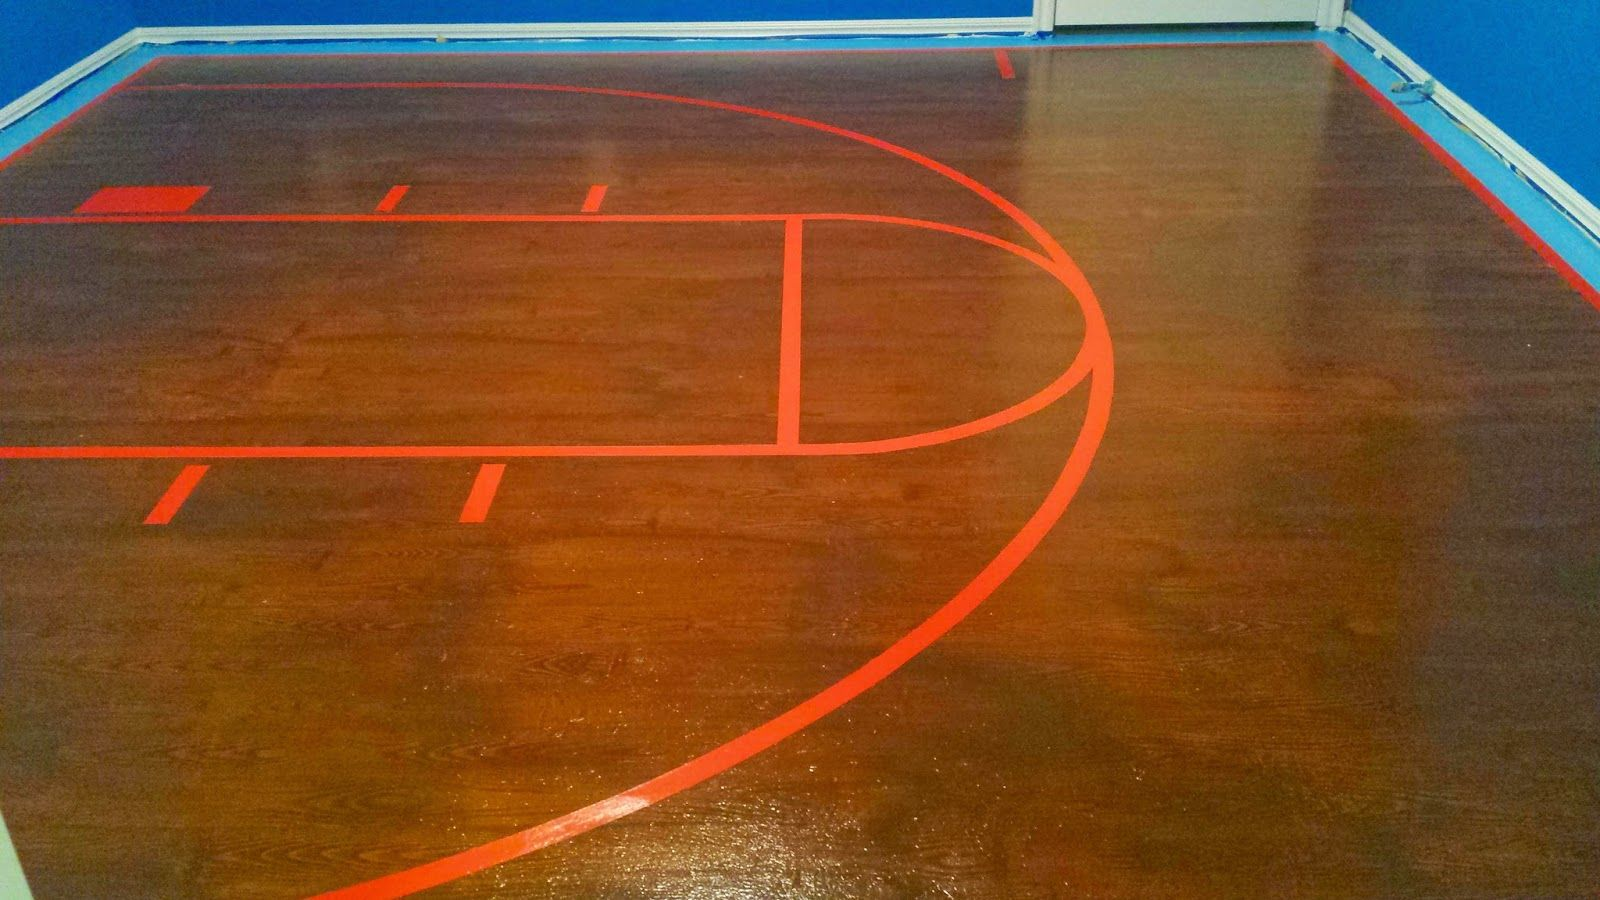 Painted Plywood Subfloor Beginning To End Painted Plywood Floors Basketball Court Painting Painted Plywood Floors Plywood Flooring Basketball Theme Room